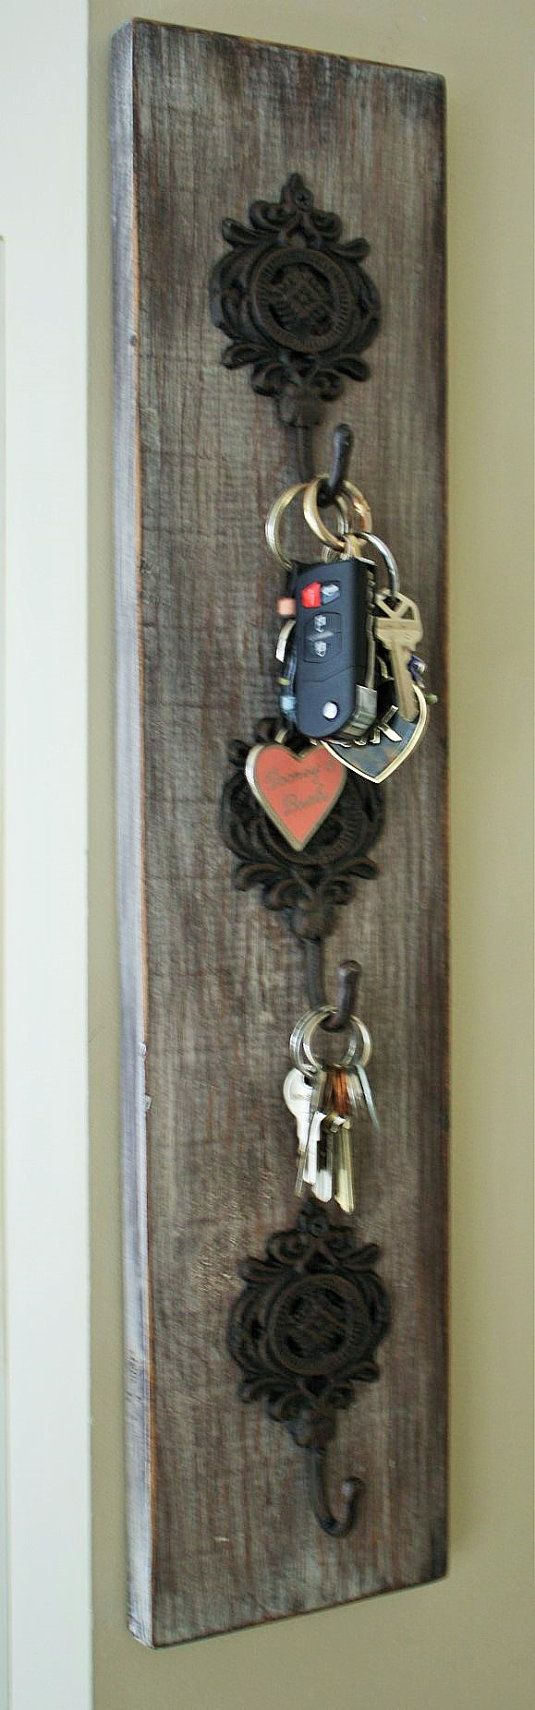 Key, Jewelry, Purse, Coats, Towel Hook Organizer - Hand made reclaimed barn wood - Great Mother's Day Gift! on Etsy, $18.00